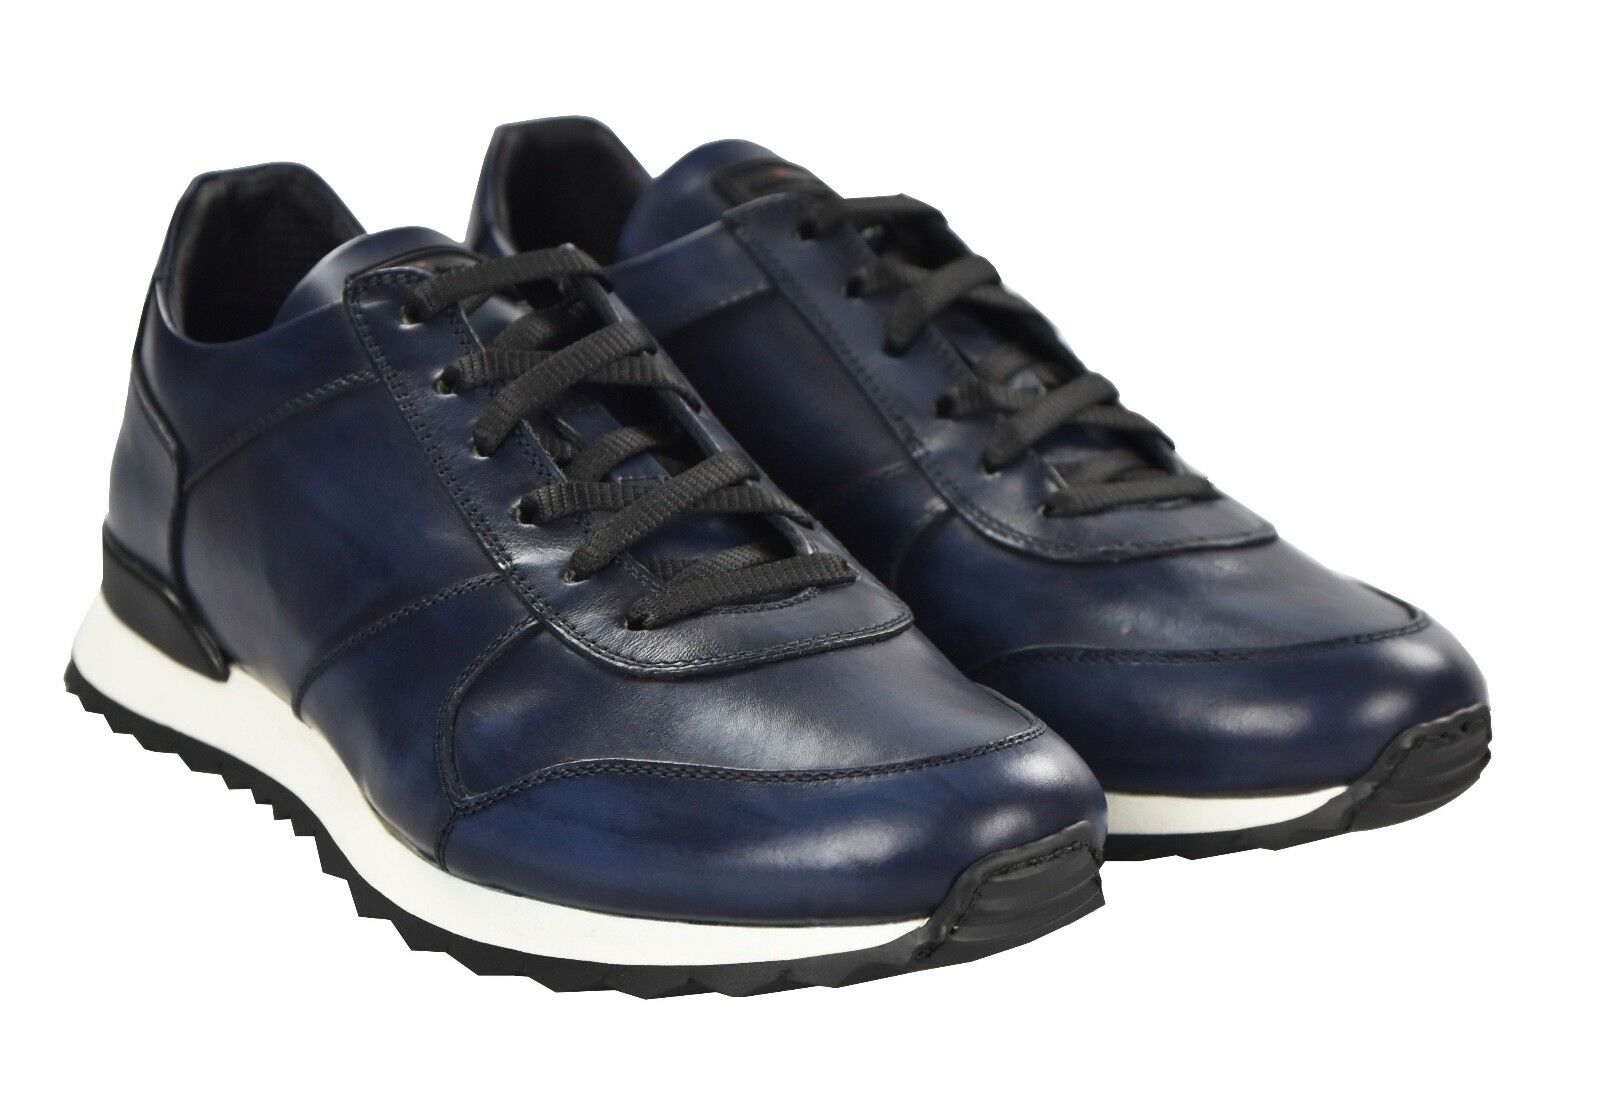 fad56d979e NEW KITON SNEAKERS 100% LEATHER 10 US 43 KSCW9 SHOES SIZE  nxwboh7214-Athletic Shoes